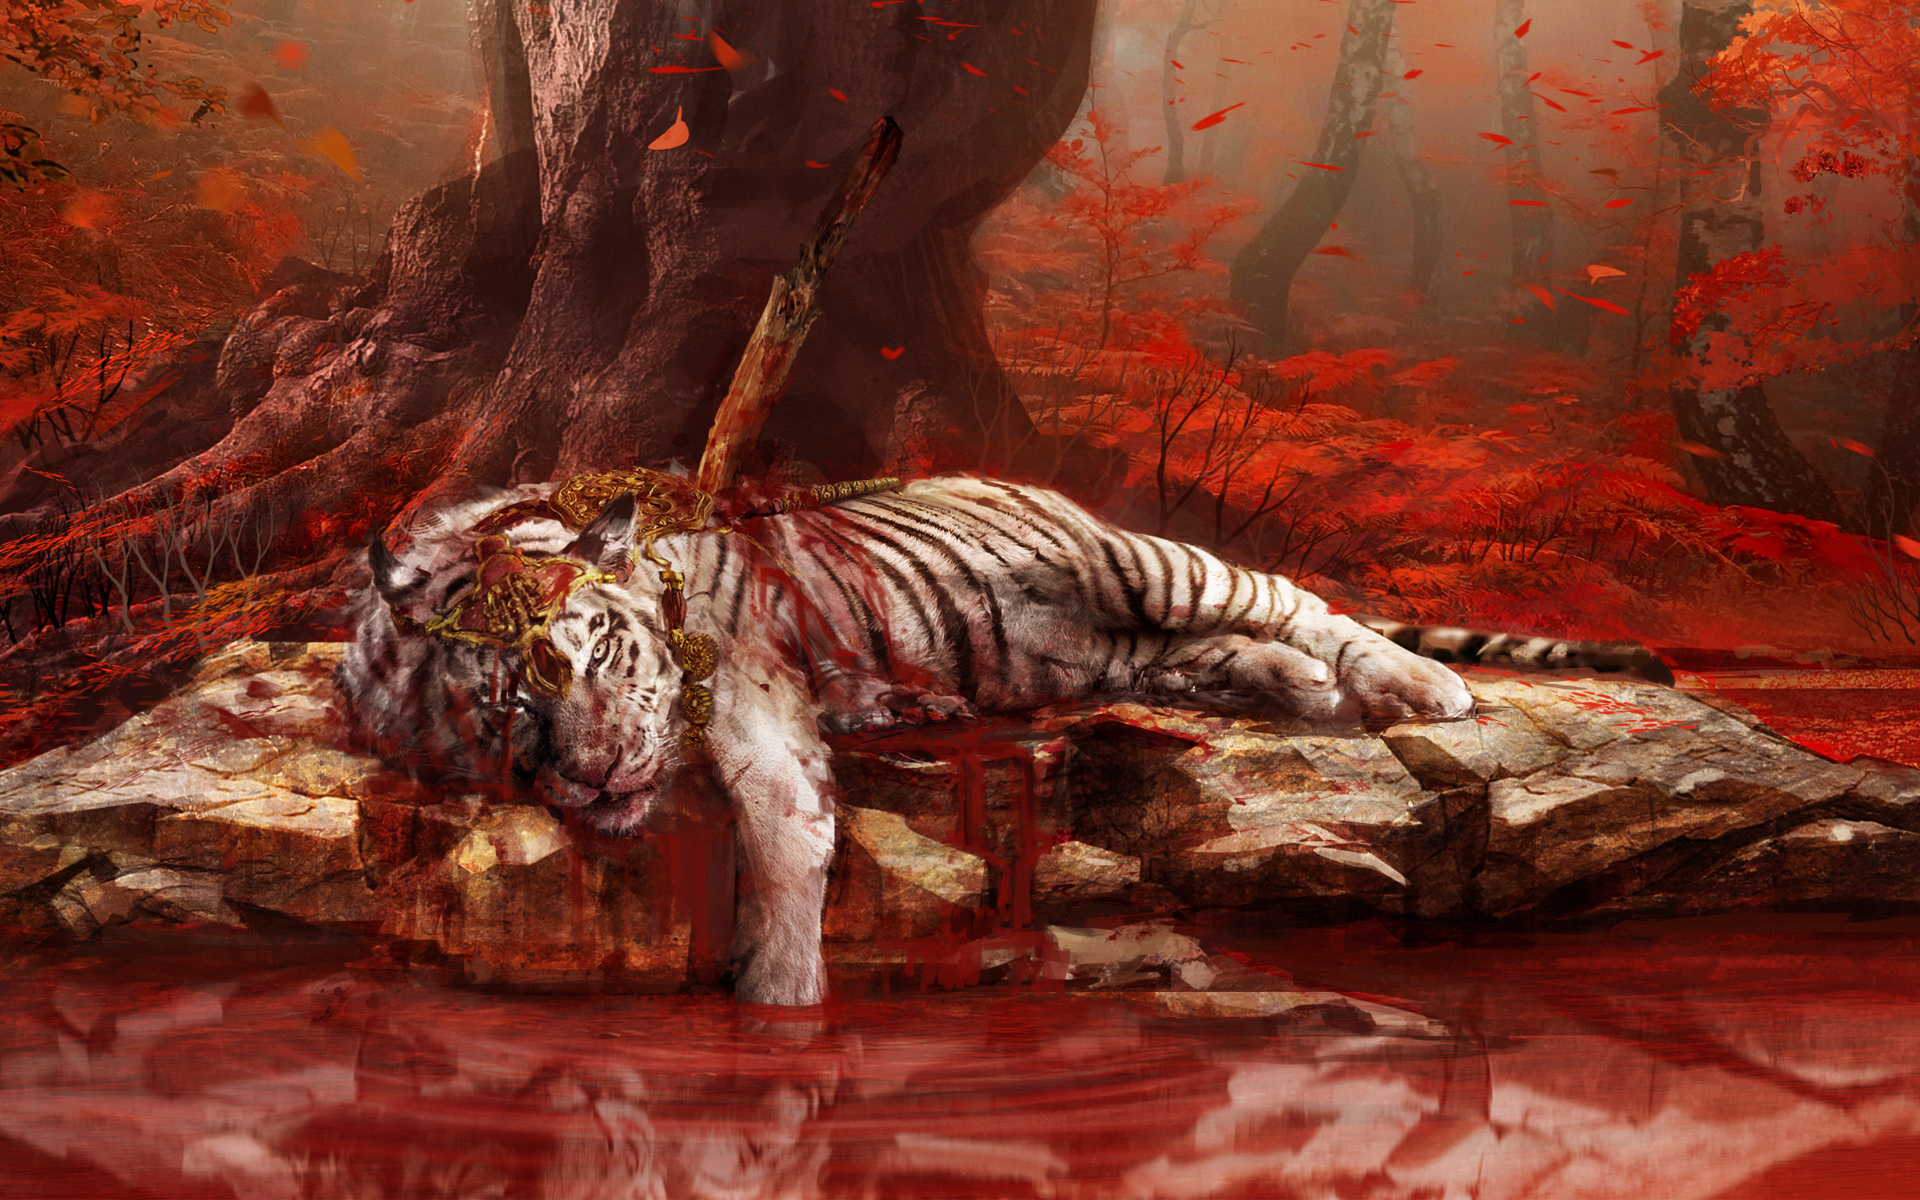 HD Wallpapers Far Cry 4 Dead Tiger